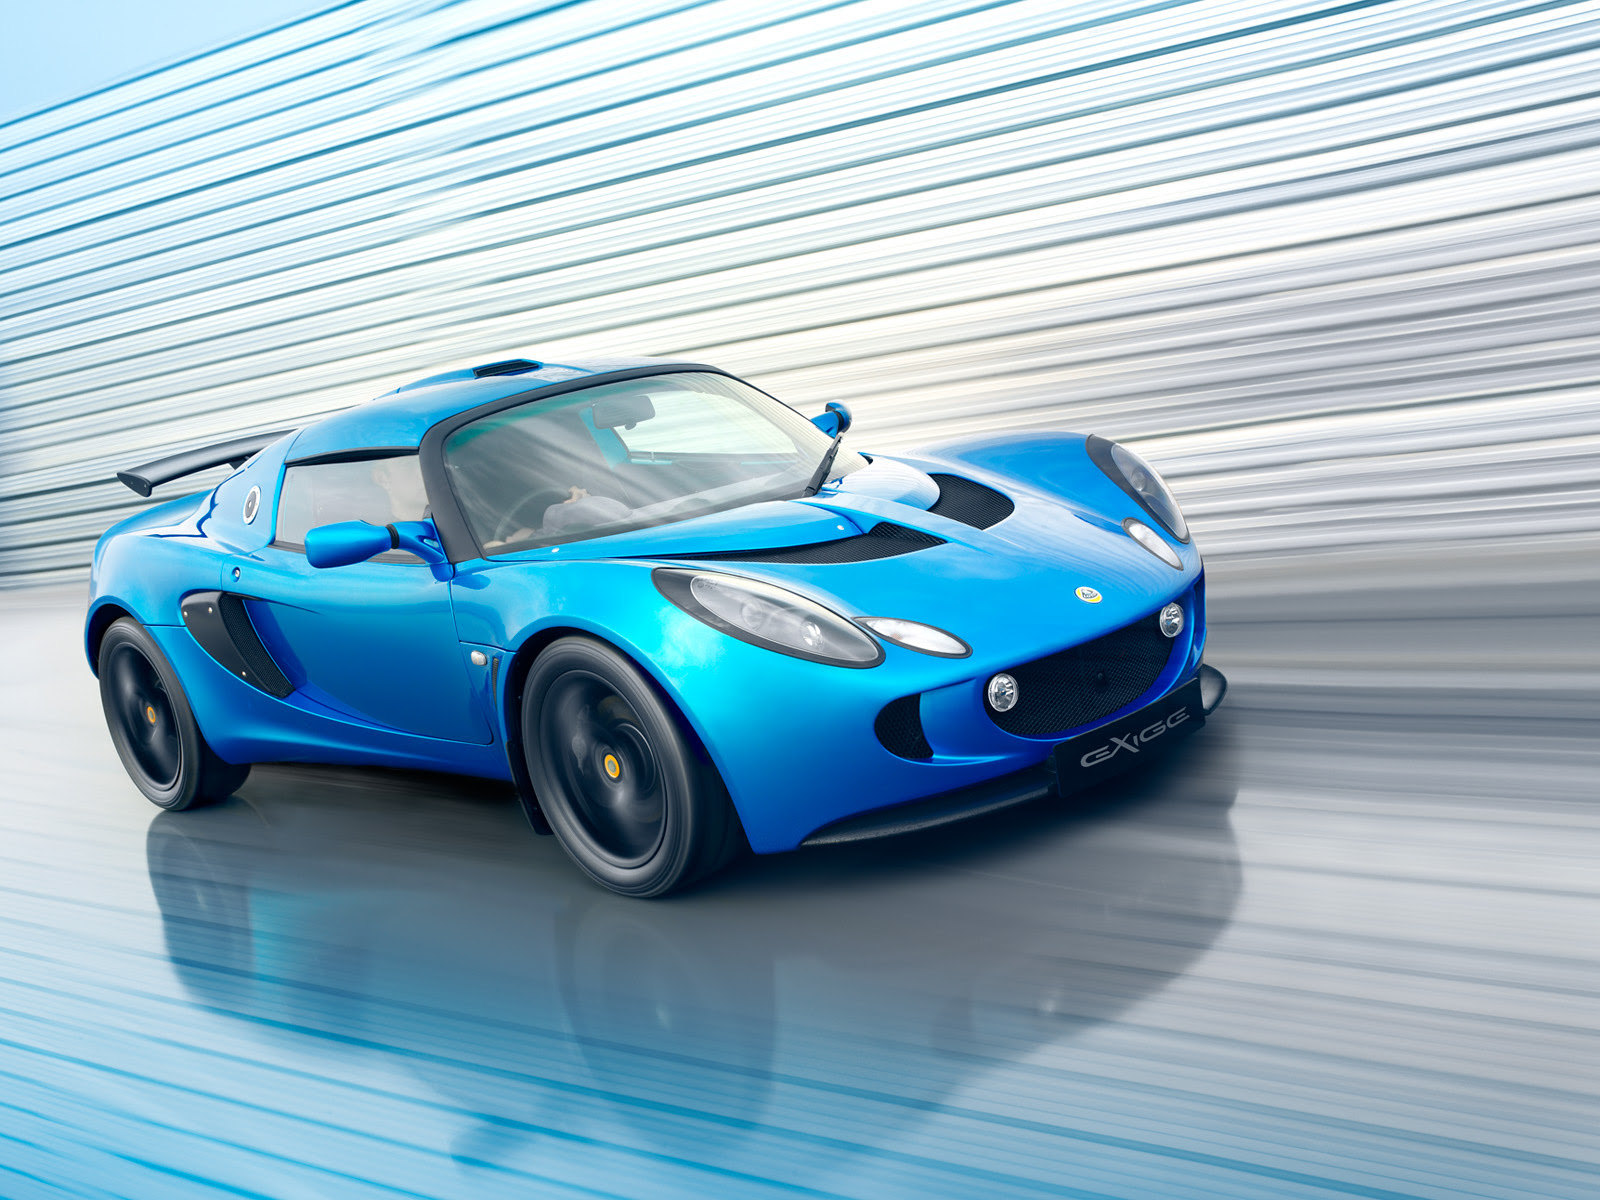 Lotus Wallpapers Download Free Lotus Exige S2 2006 13 Wallpapers Images, Photos, Reviews